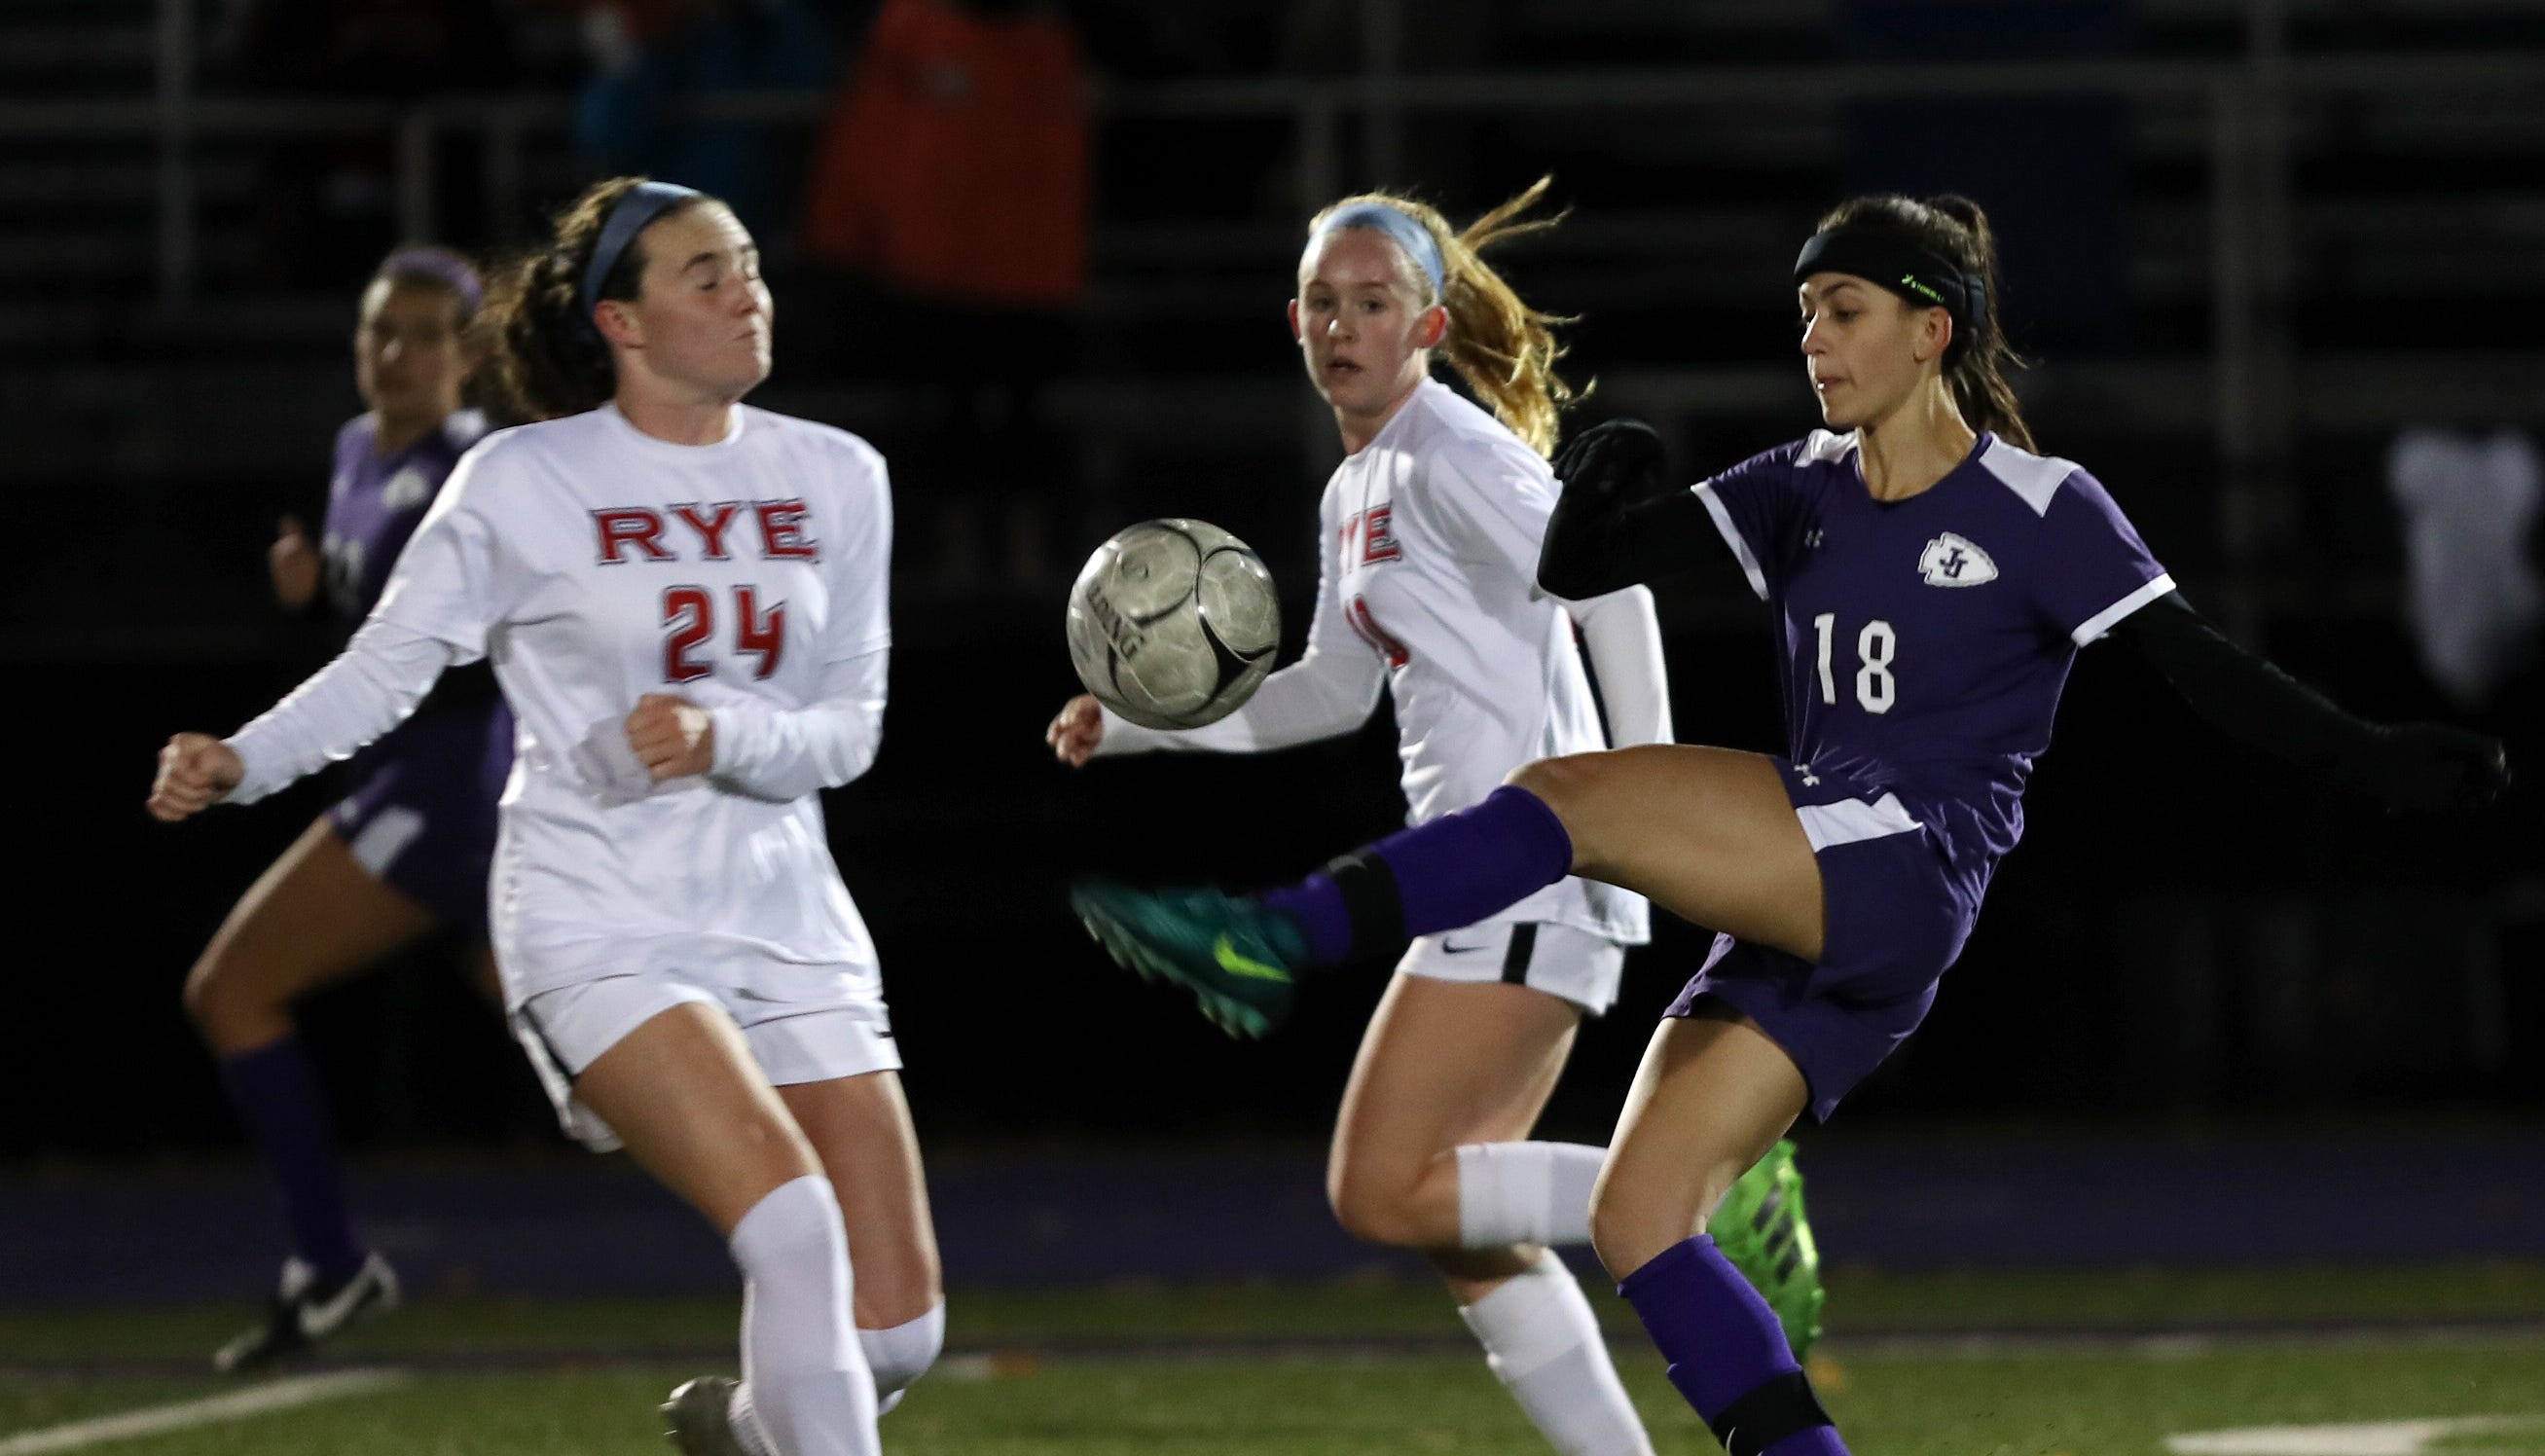 From right, John Jay's Adeline Angelino (18) clears the ball away from Rye's Molly Broderick (24) during girls soccer playoffs at John Jay High School in Cross River Oct. 25, 2018. John Jay won the game 2-1 in double overtime.